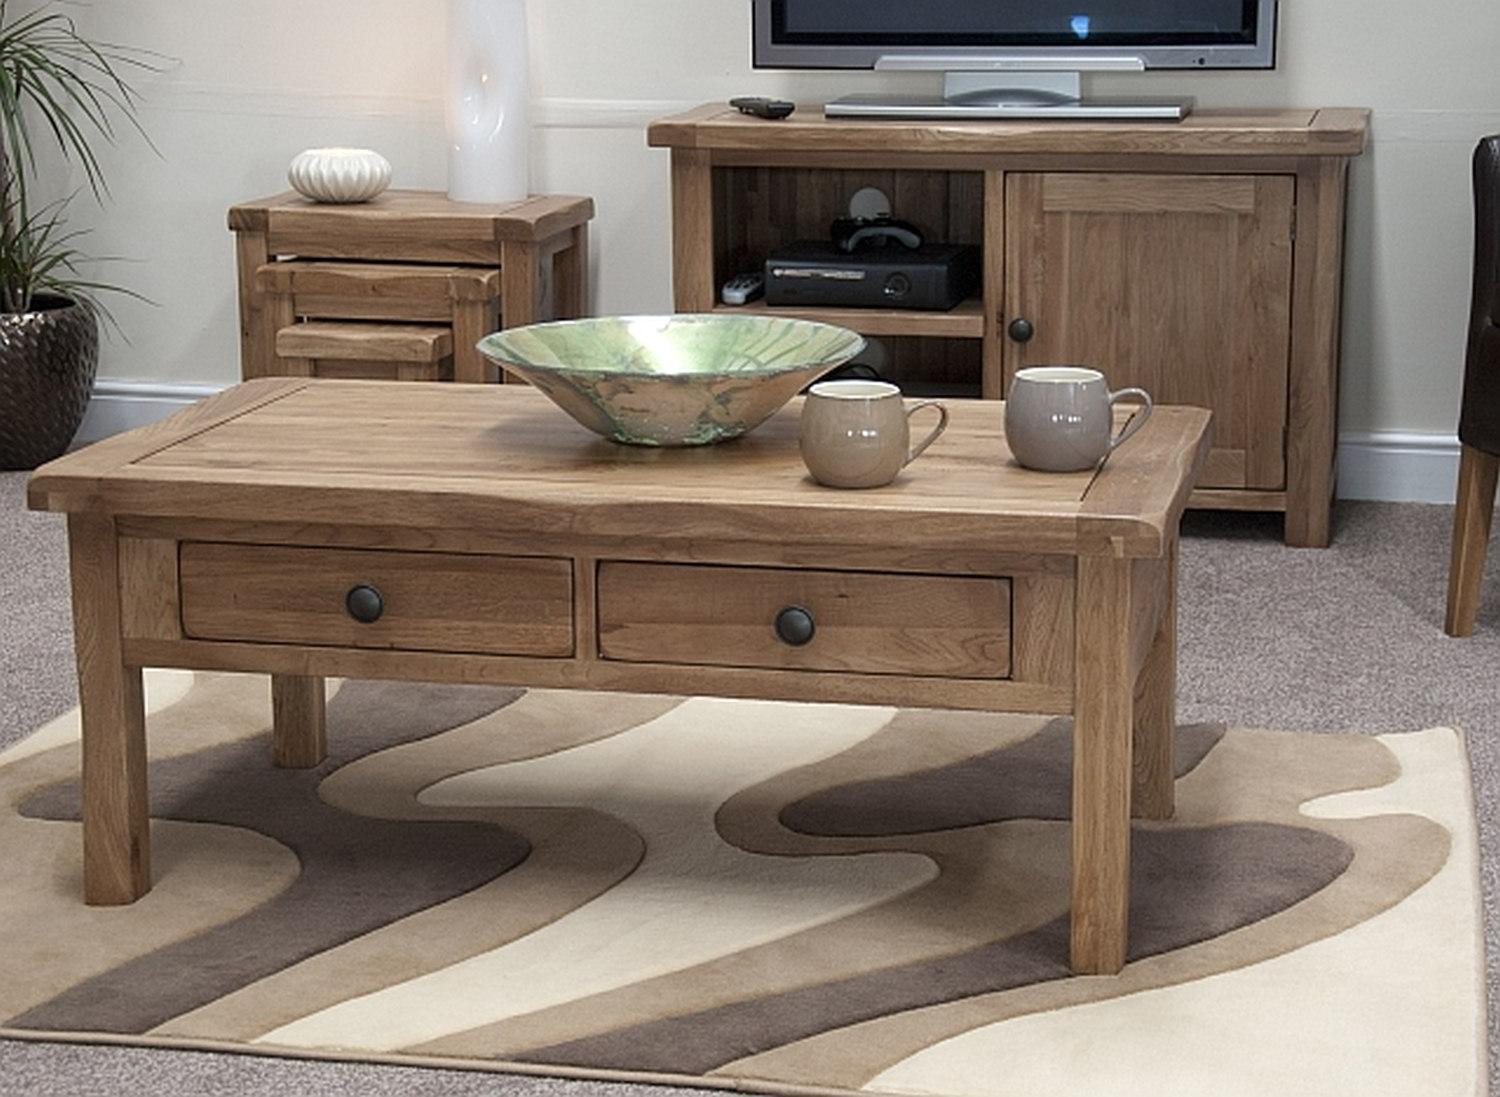 Rustic Coffee Tables And End Tables Coffee Tables And End Tables Is A Part Of Rustic End Tables (View 4 of 8)